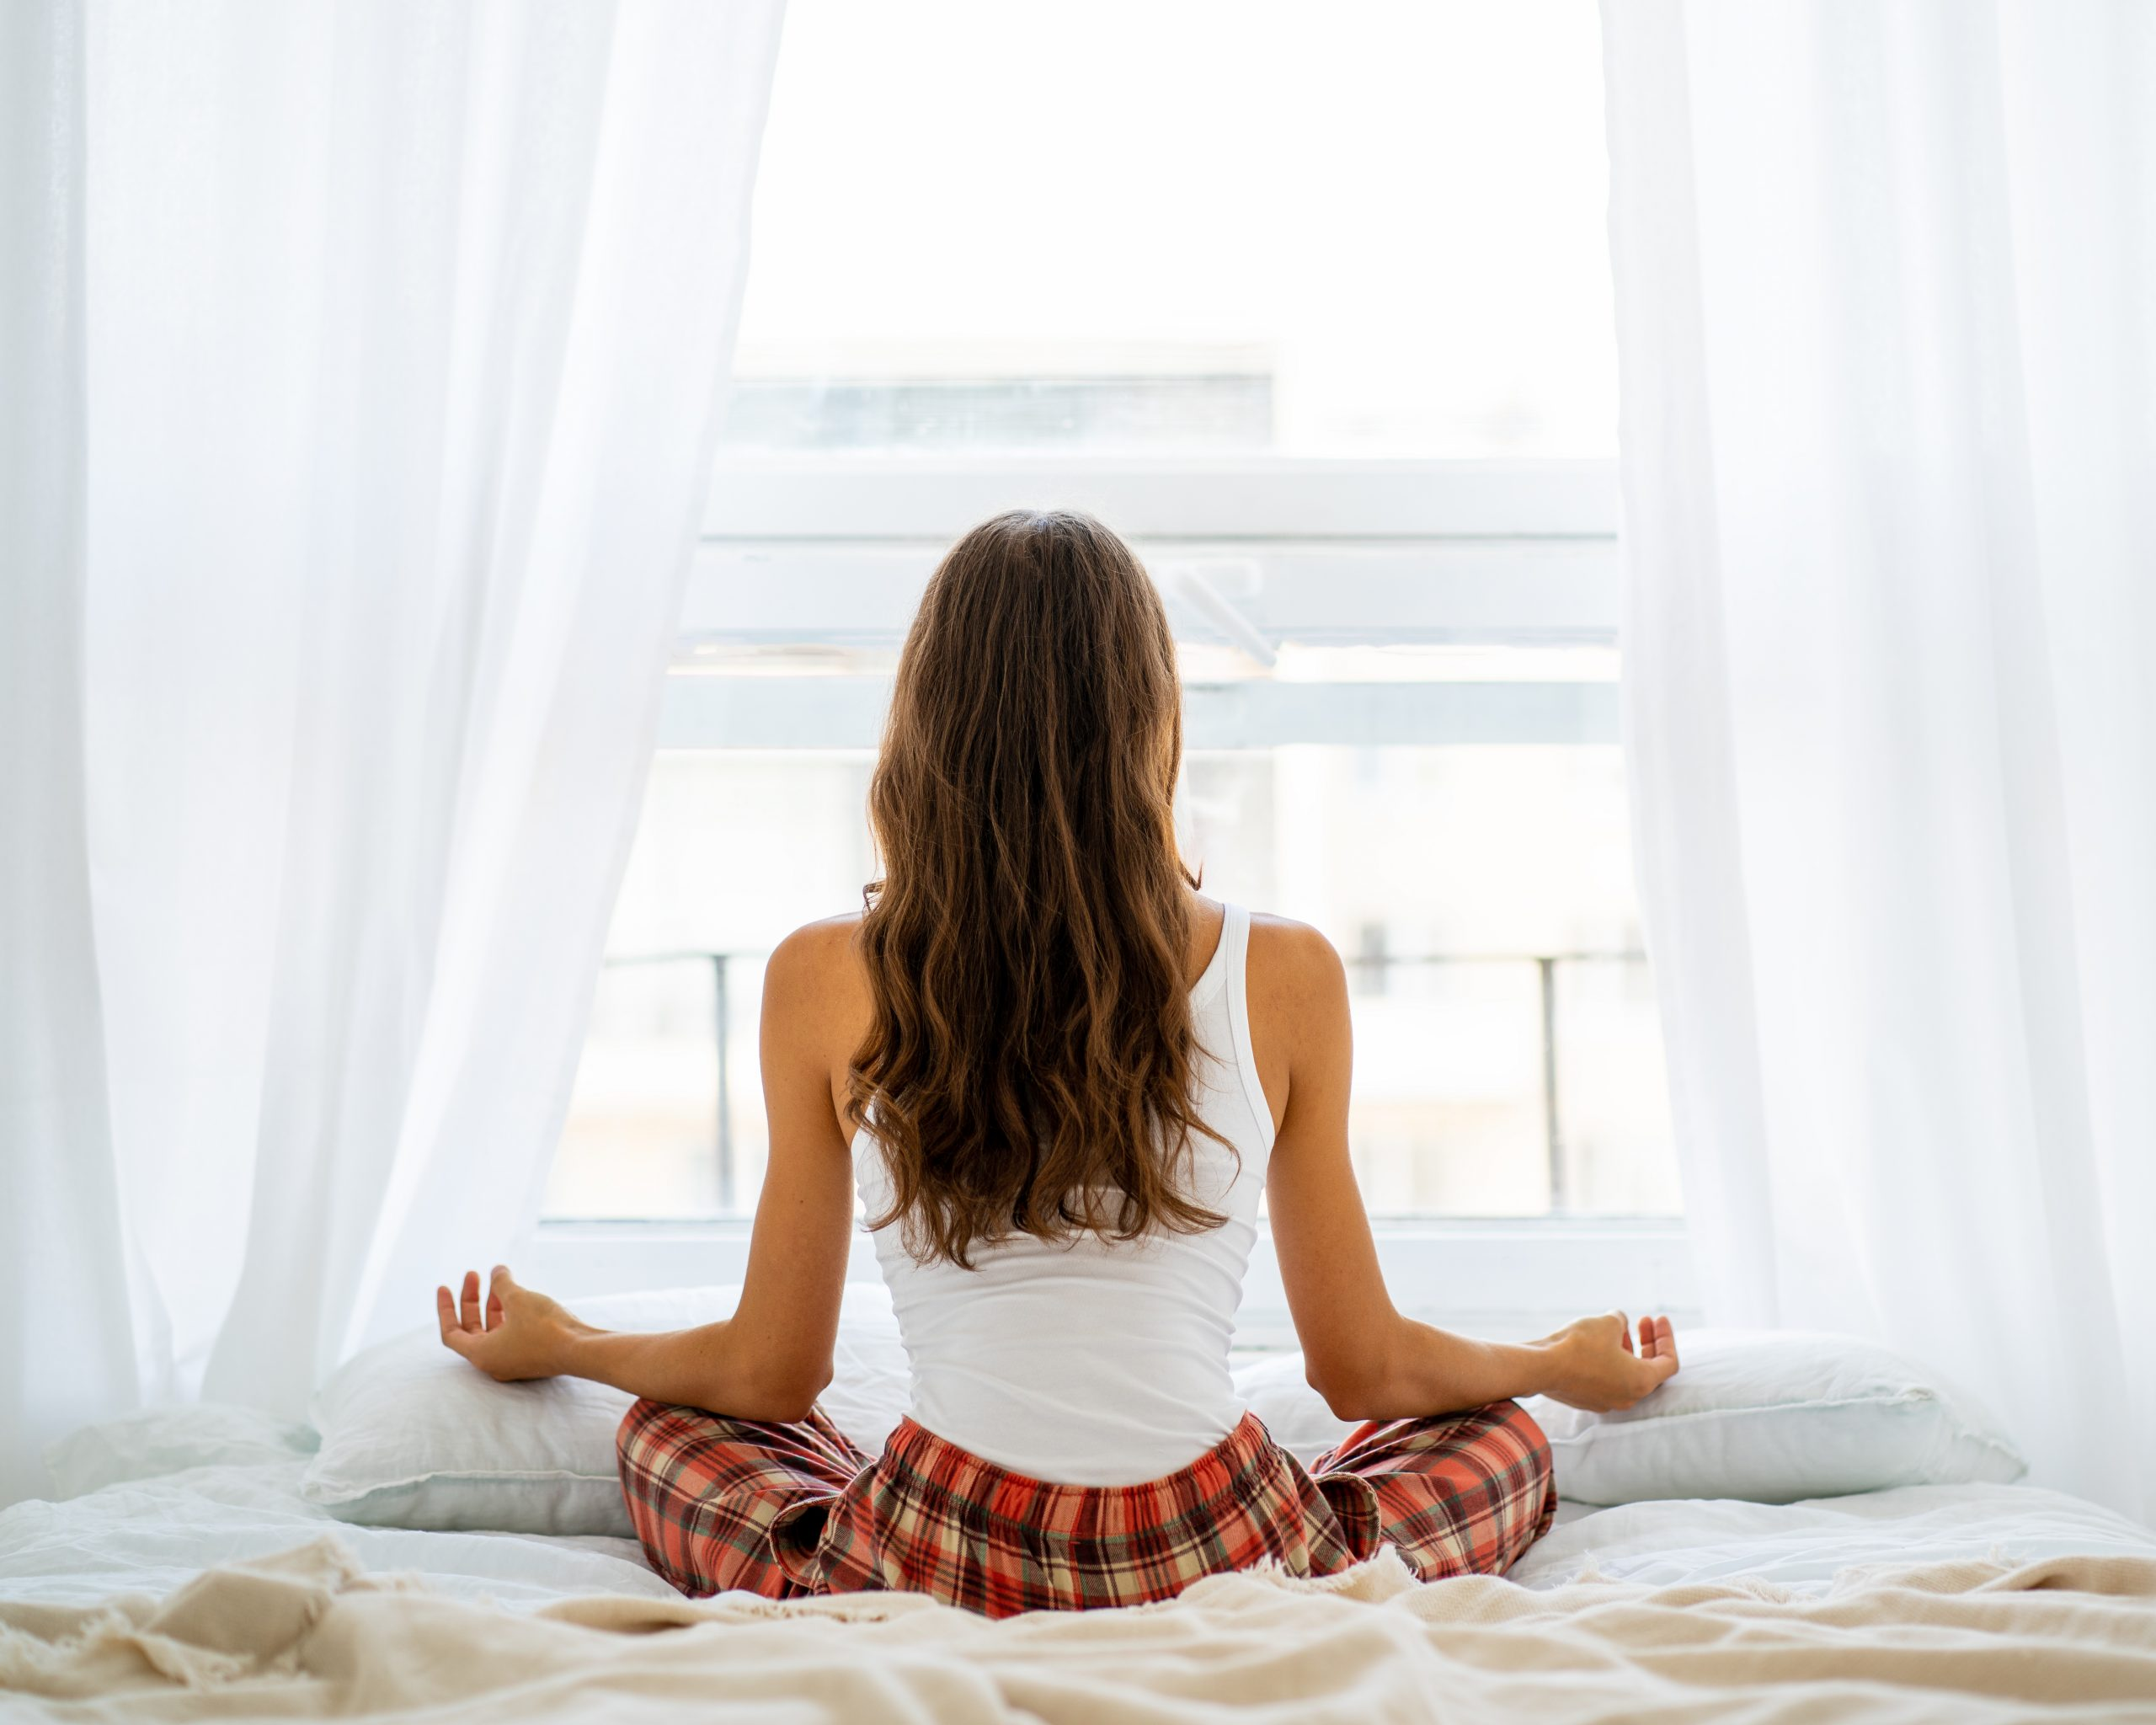 Yoga Poses To Do In Bed To Energise Yourself